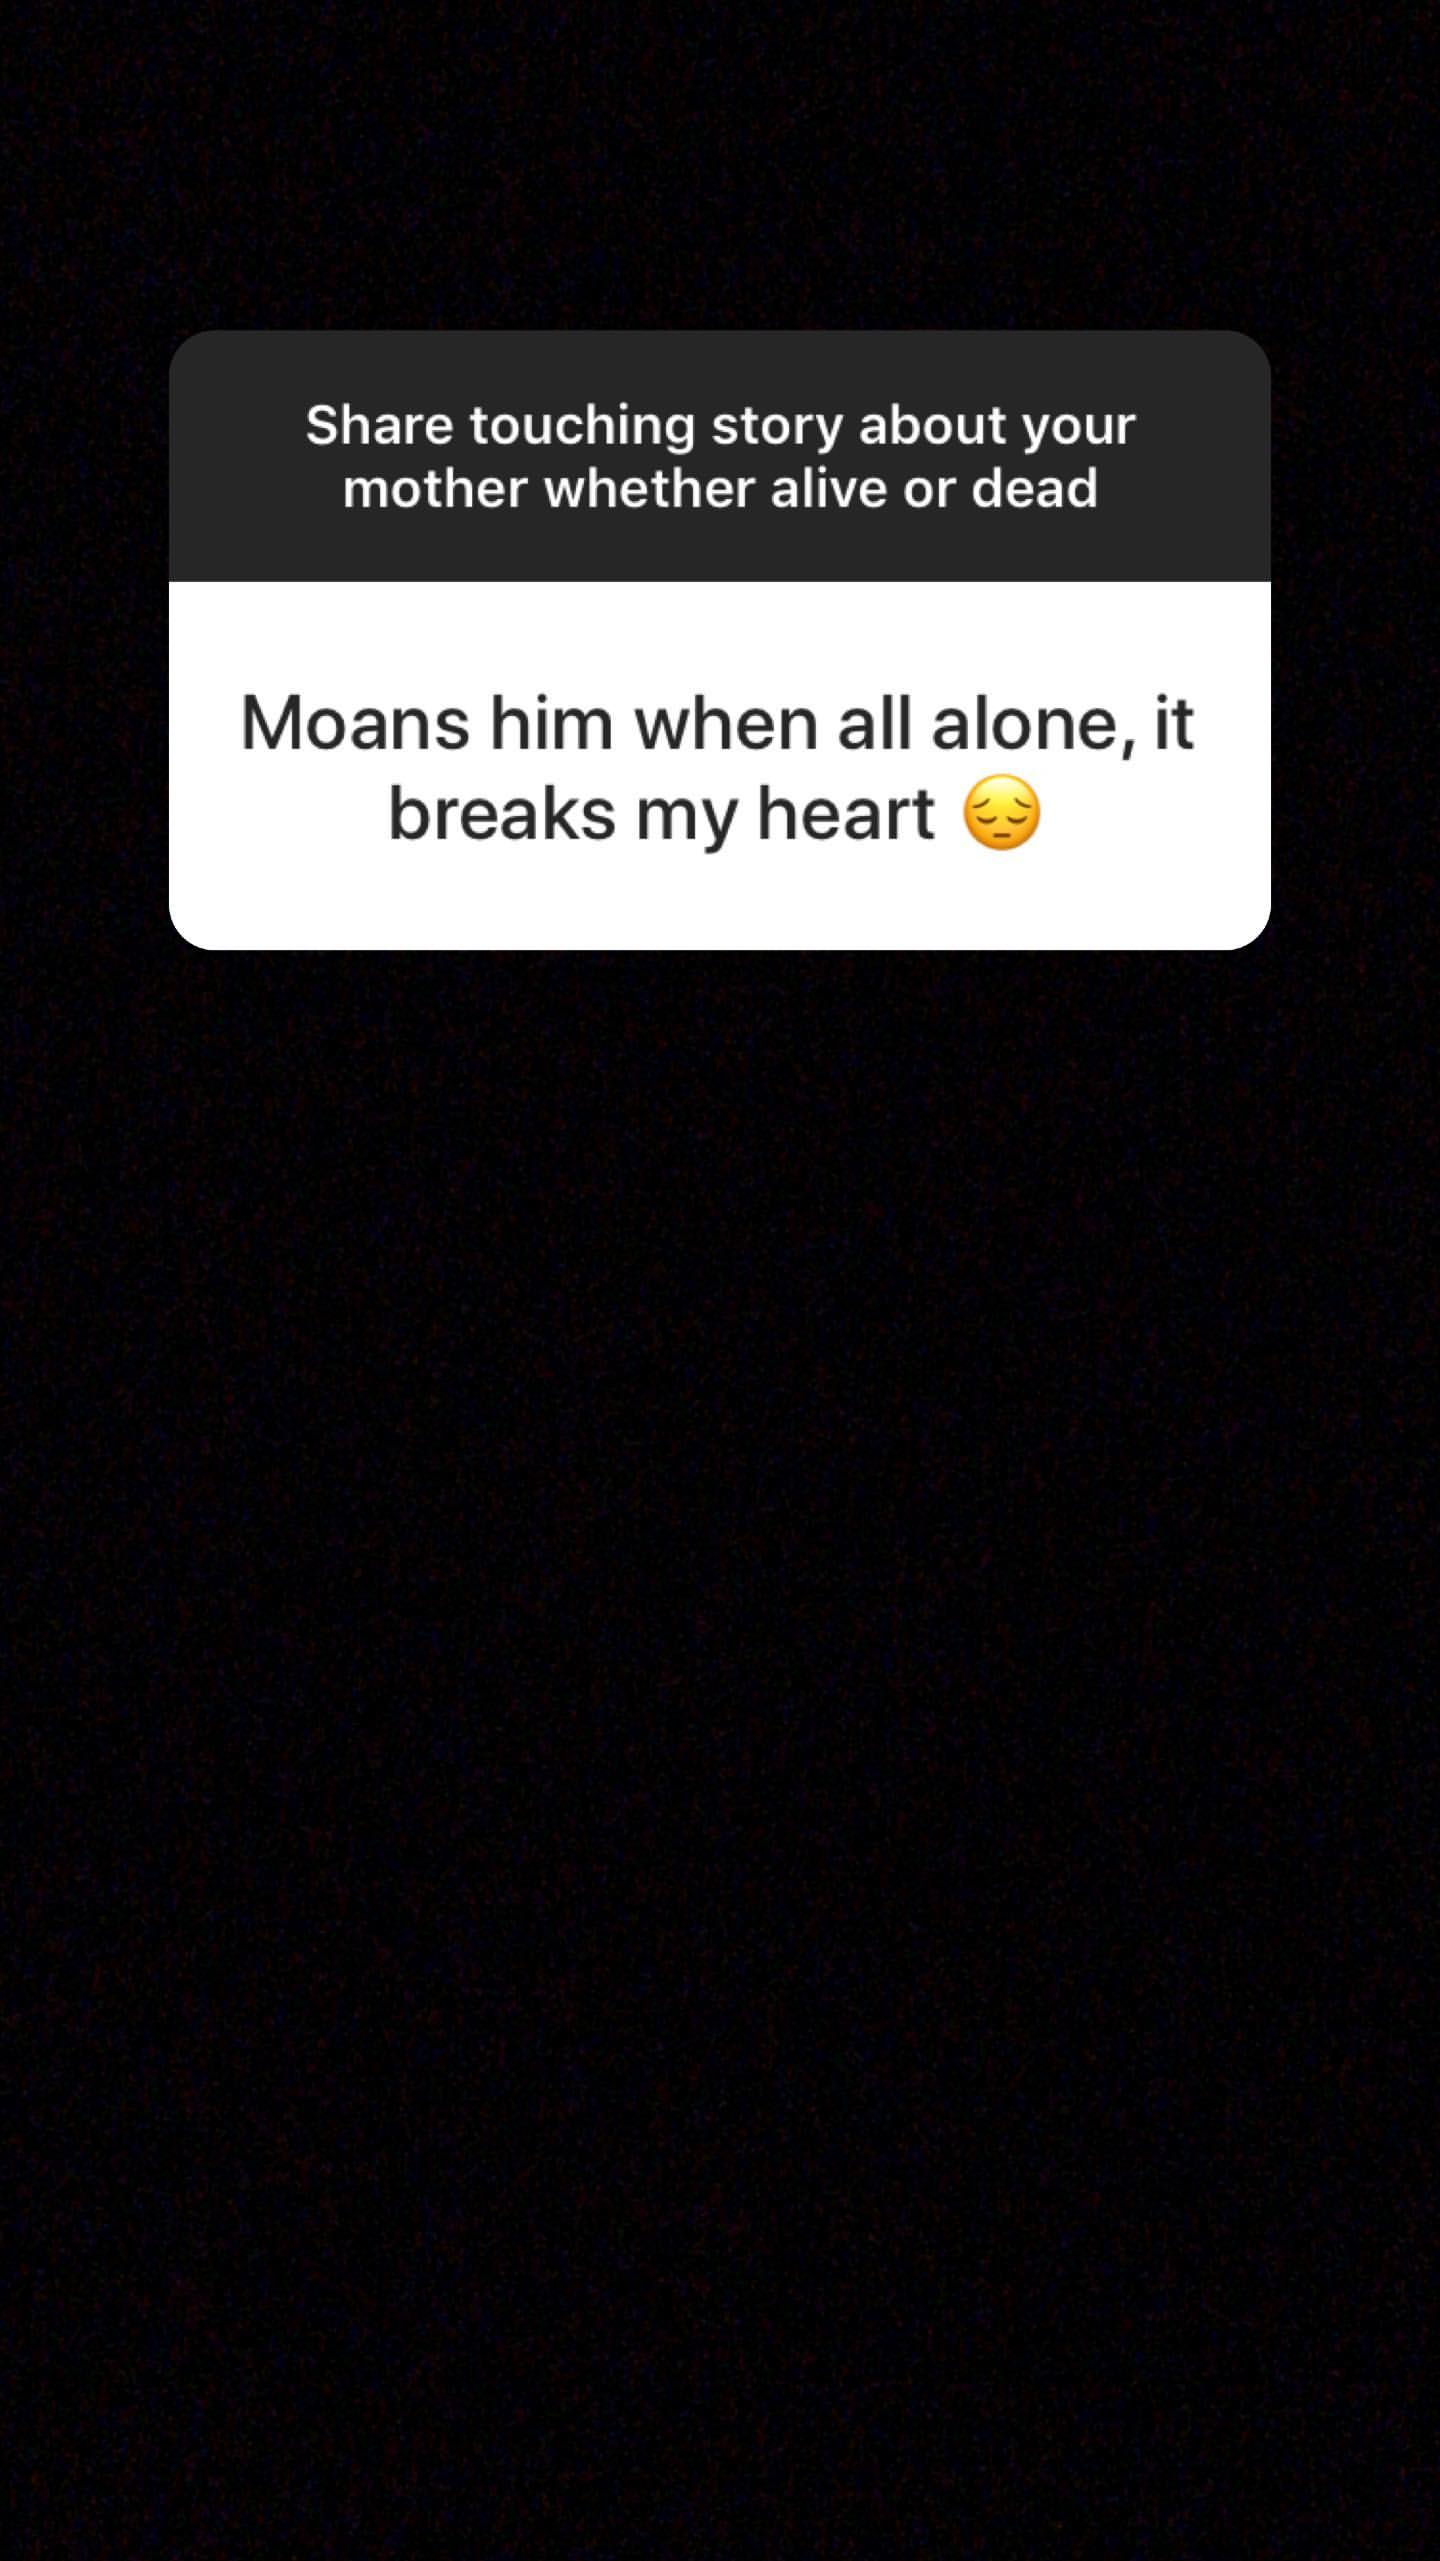 58410763 313776715959194 4196779633711747292 n - Tear-jerking! Mpasho fans break down sharing touching stories about their mothers